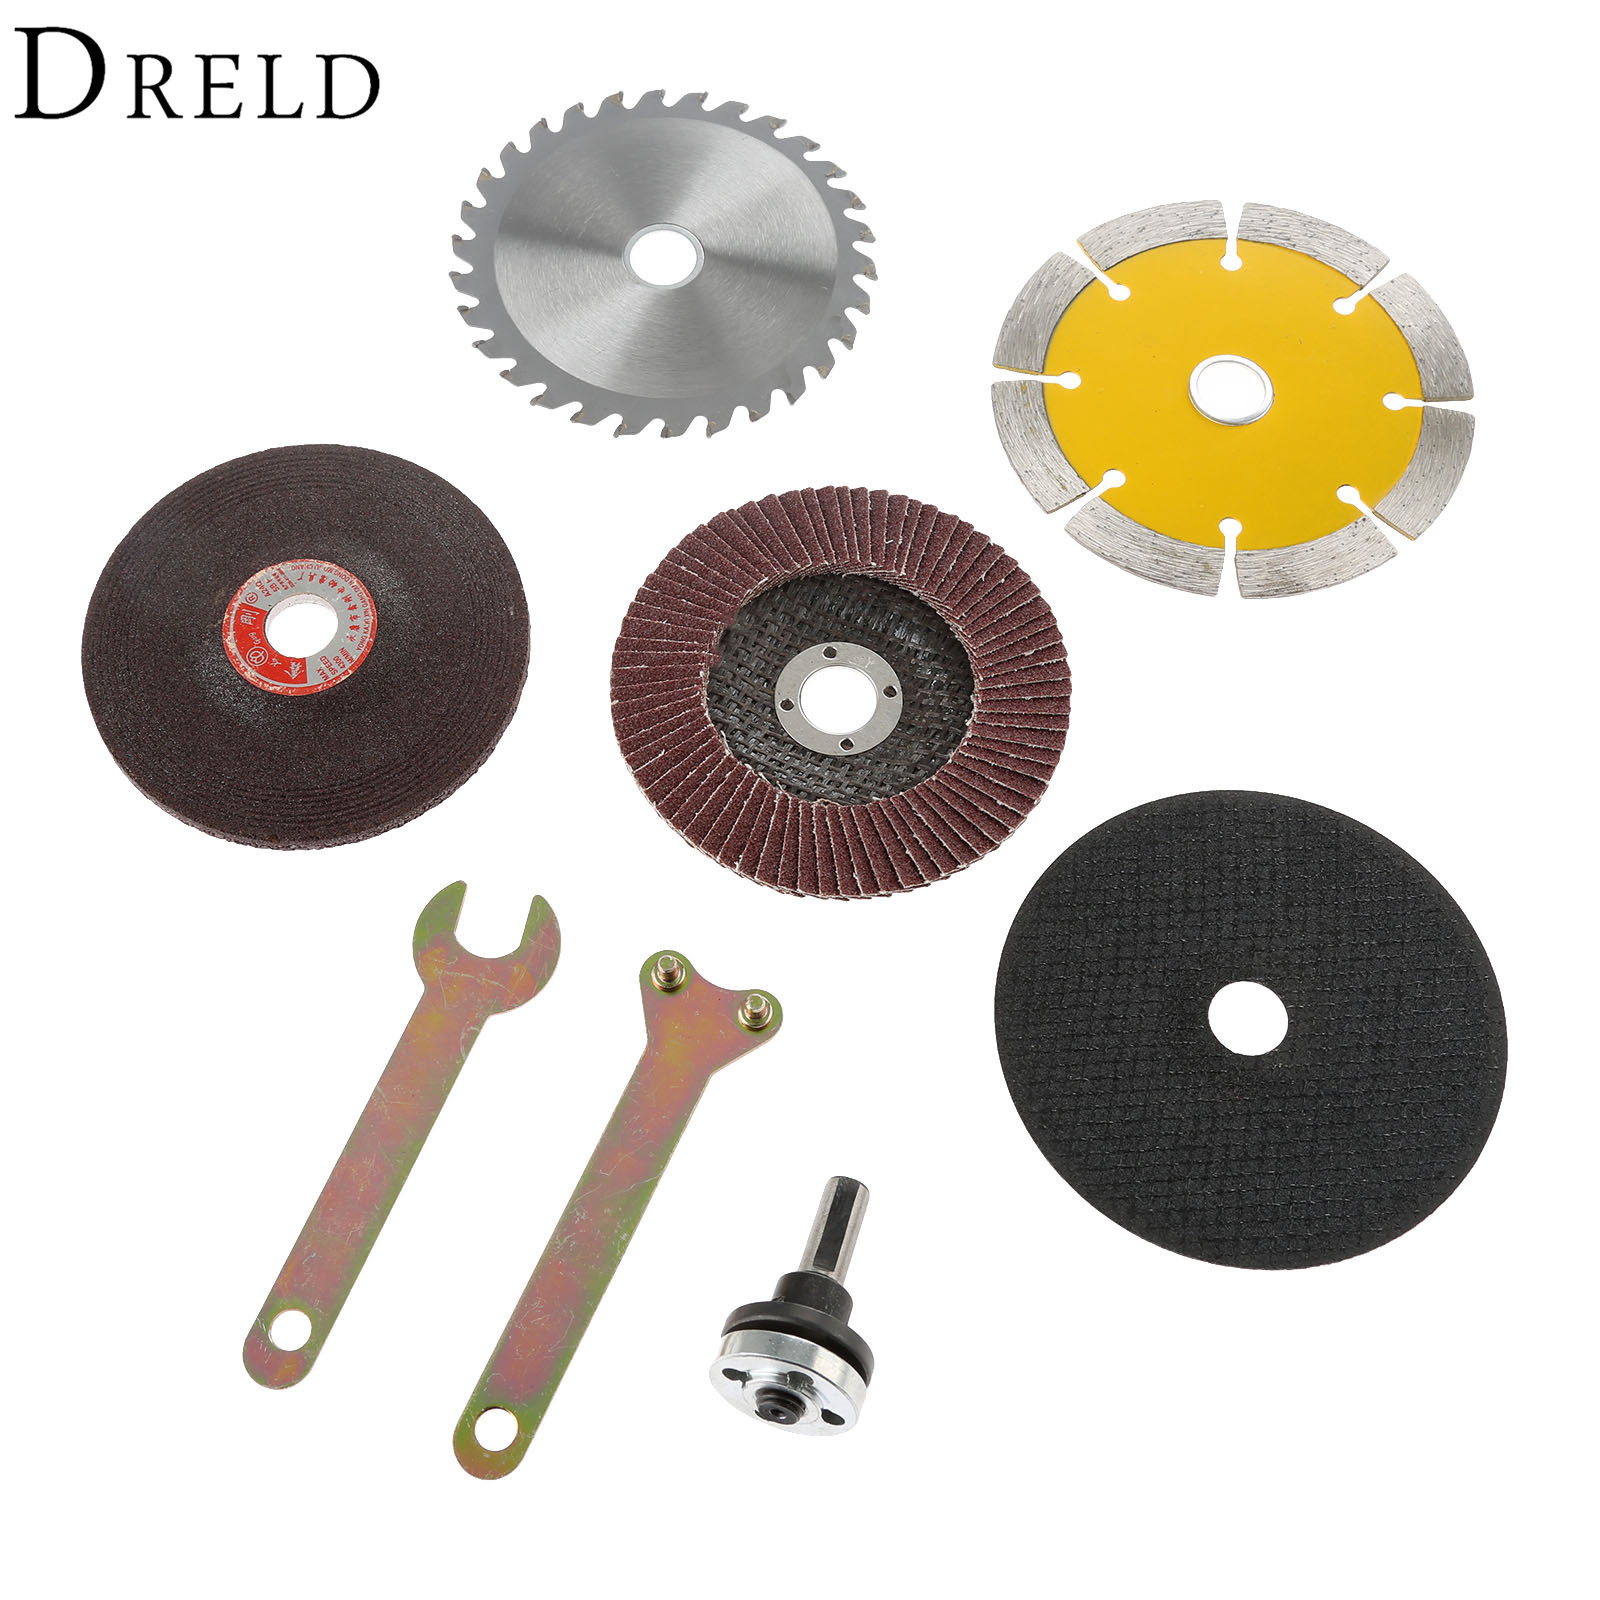 8Pcs Cutting Polishing Grinding Wheel Conversion Shank Power Tools Accessories for Electric Drill Change to Angle Grinder Cutter